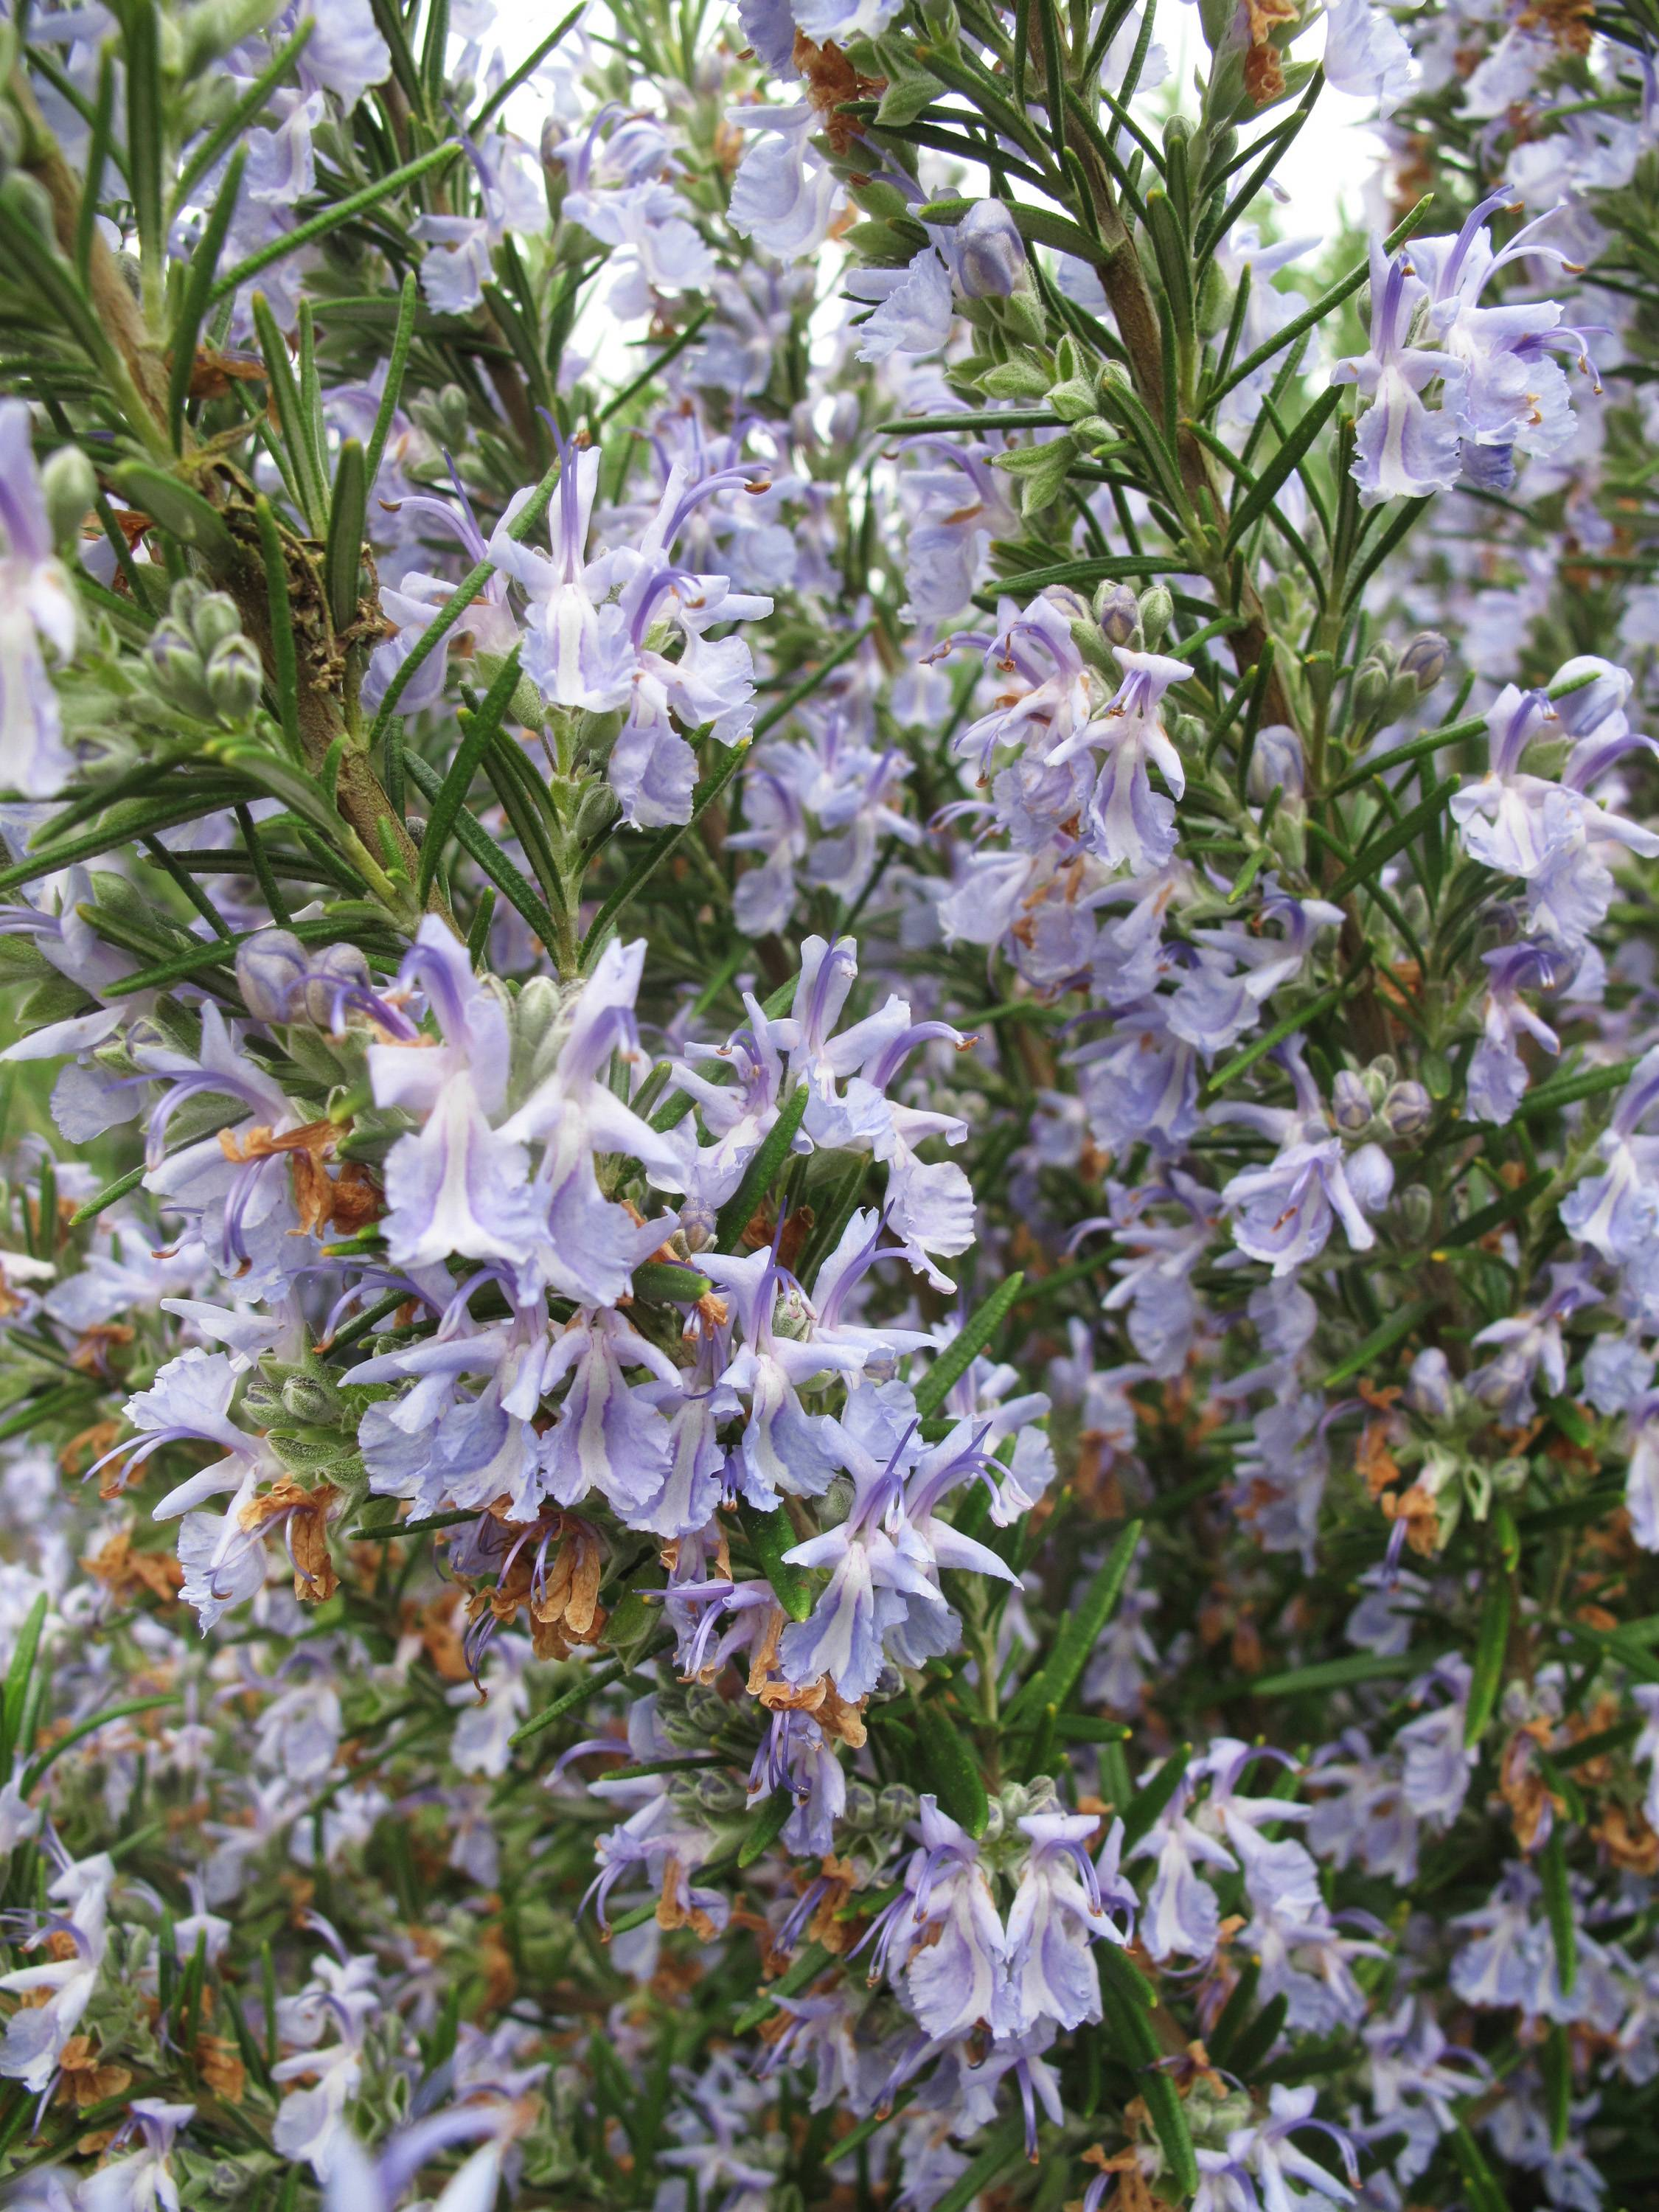 Many herbs, like this Rosemary plant, are attractive to look at as well as to taste. You can use them as a garnish or fragrant centerpiece on the dining room table.